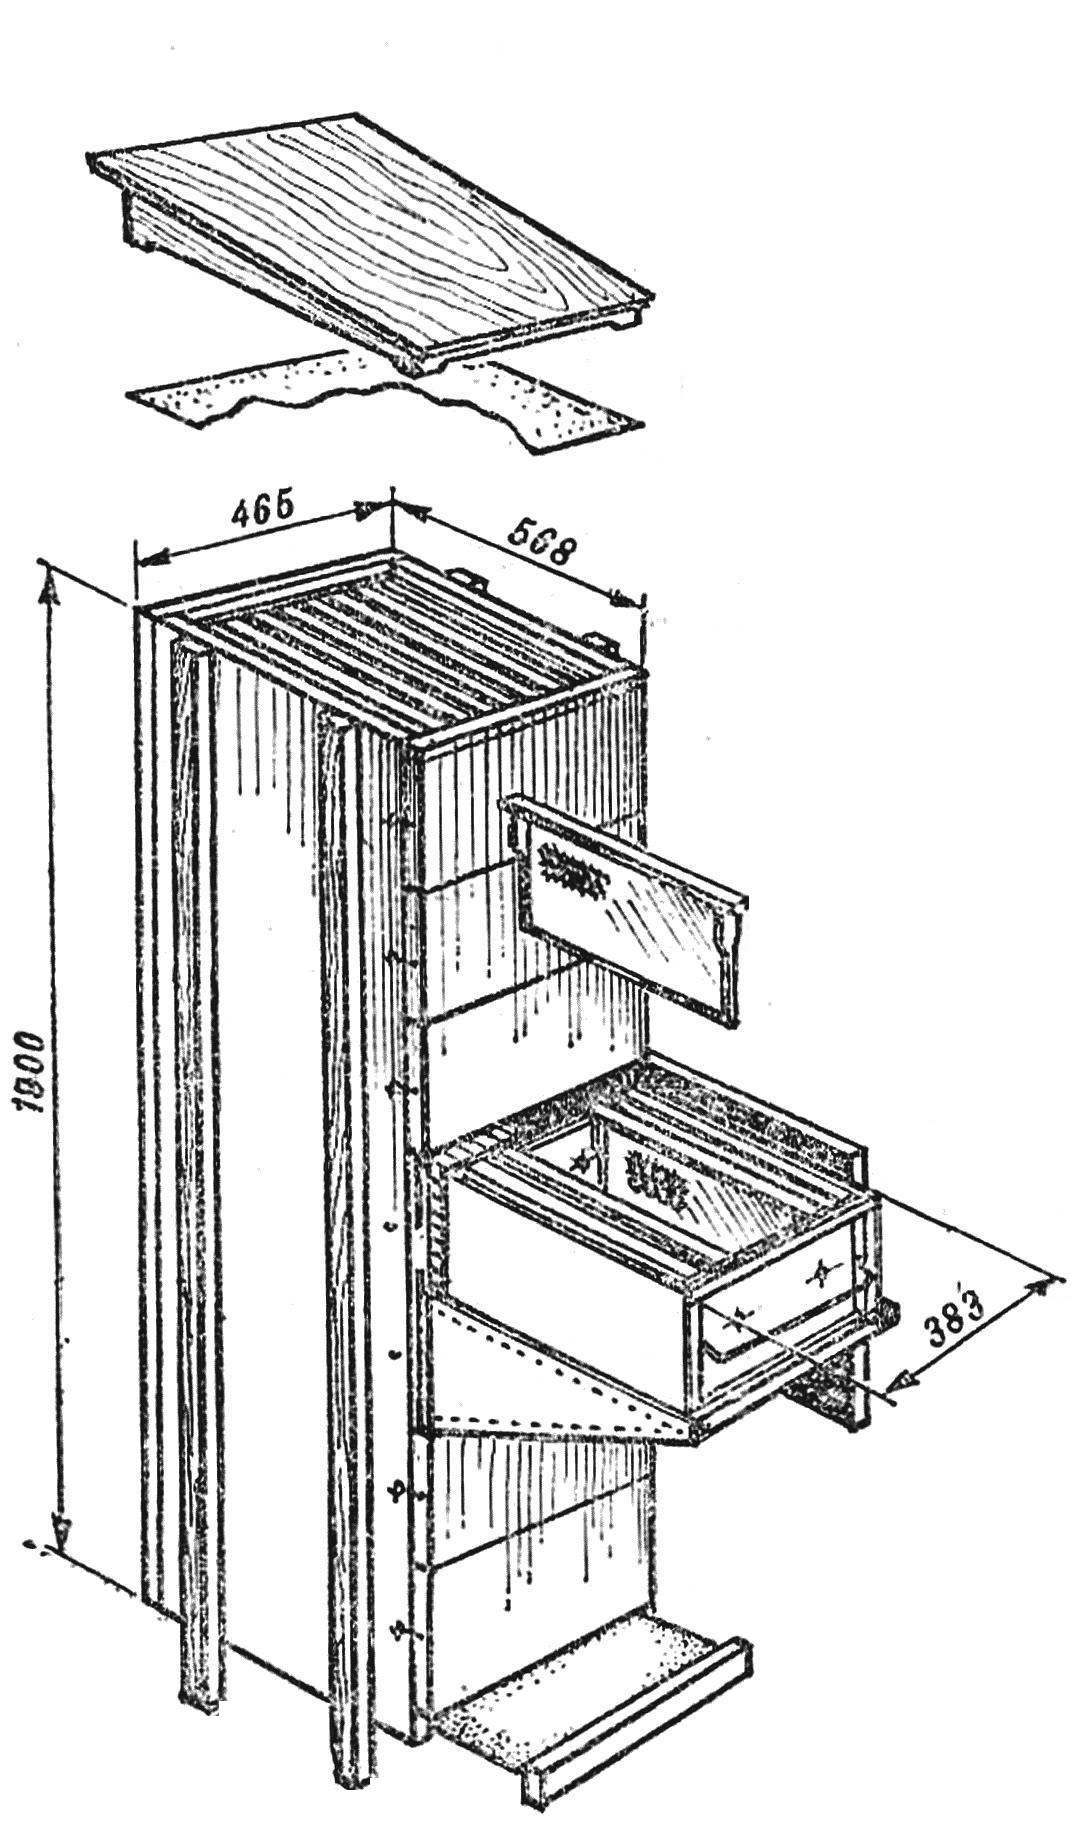 Fig. 1.General view of the beehive cluster